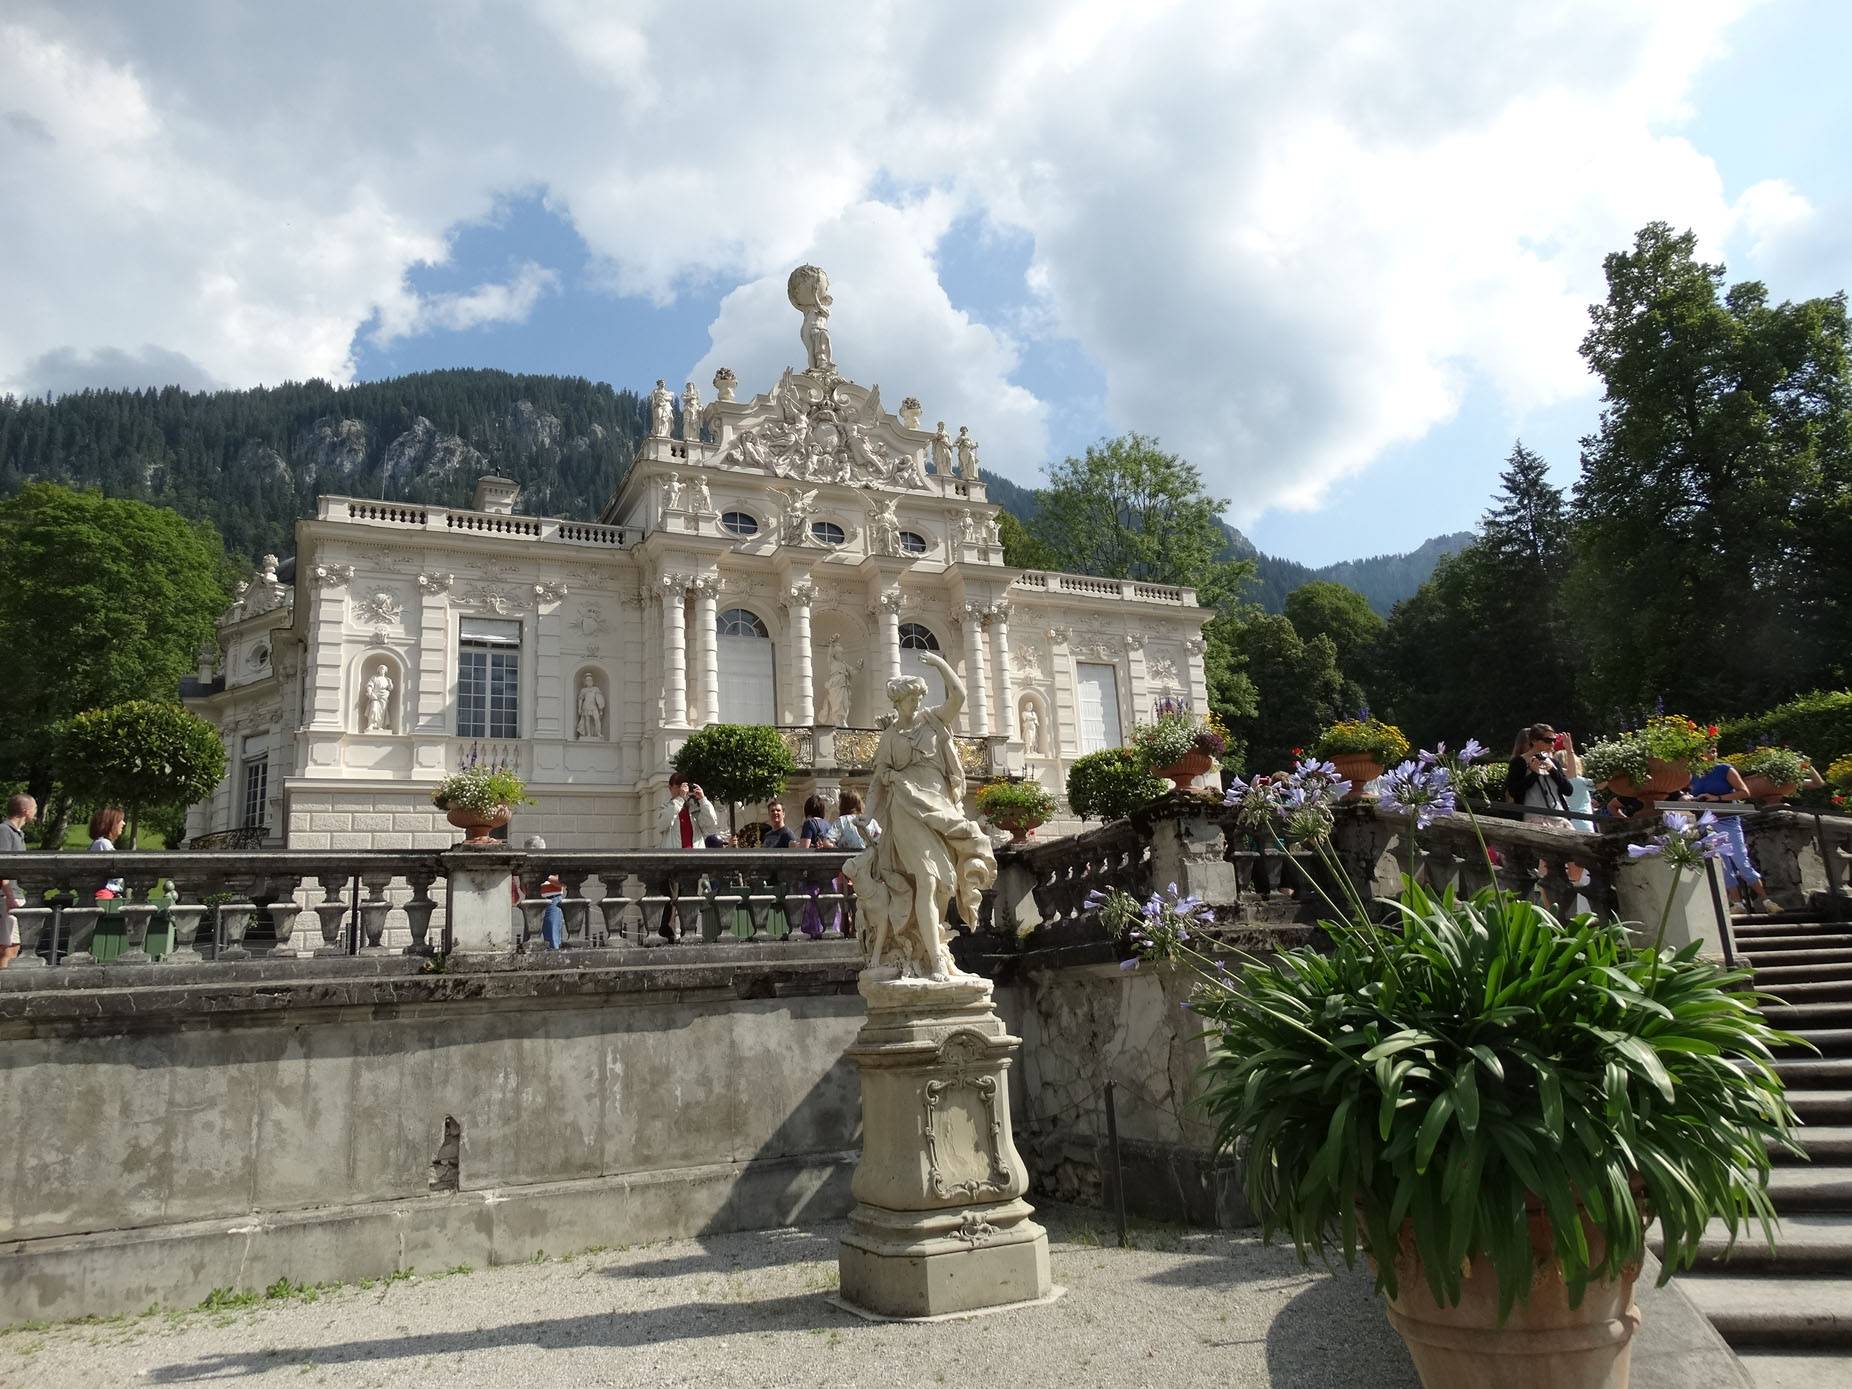 This is Linderhof Castle, which was built by King Ludwig II during the 19th century as a hunting lodge.